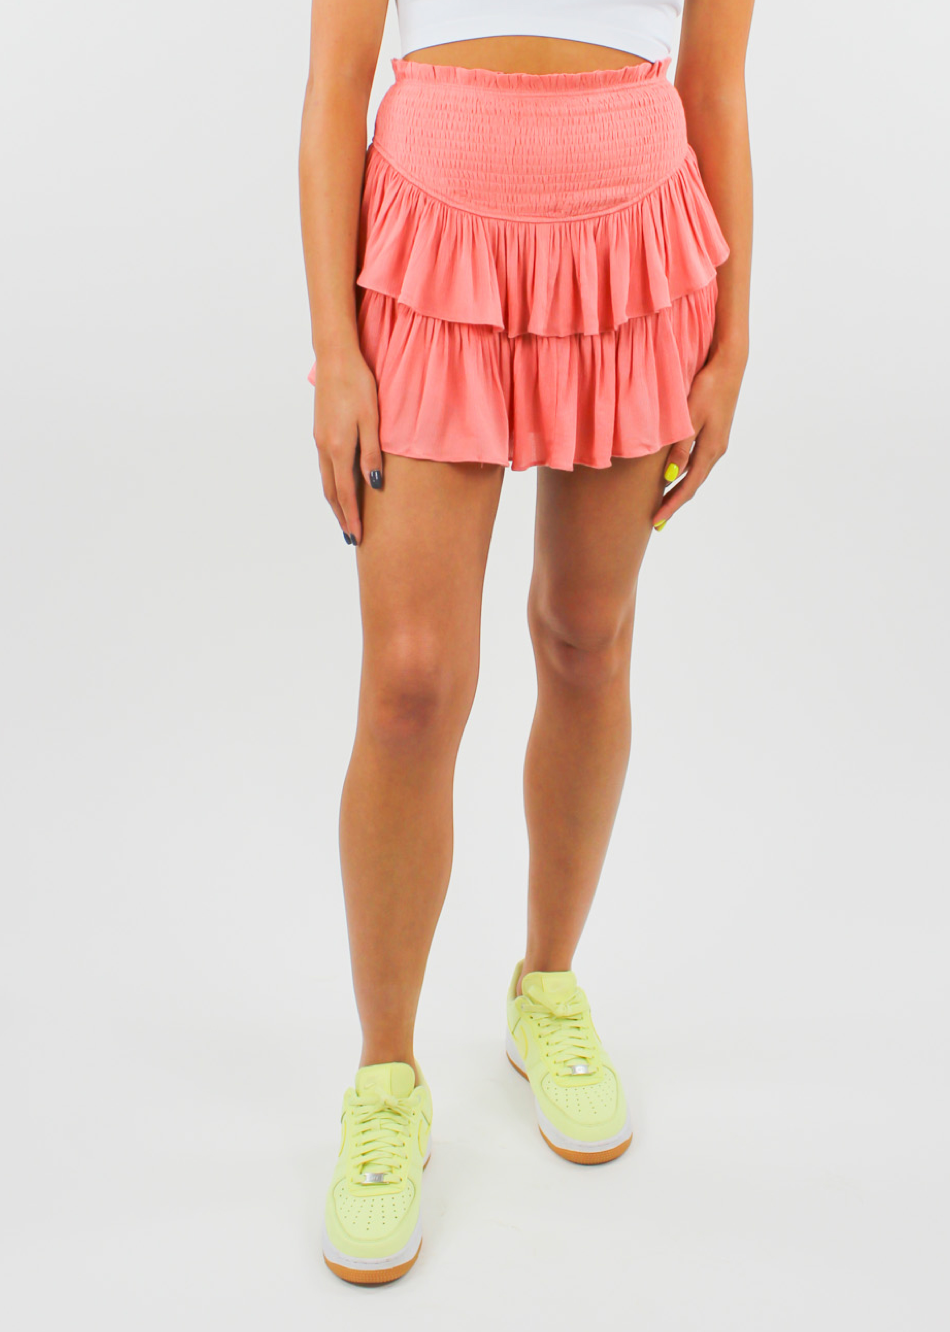 Love Galore Skirt ★ Coral